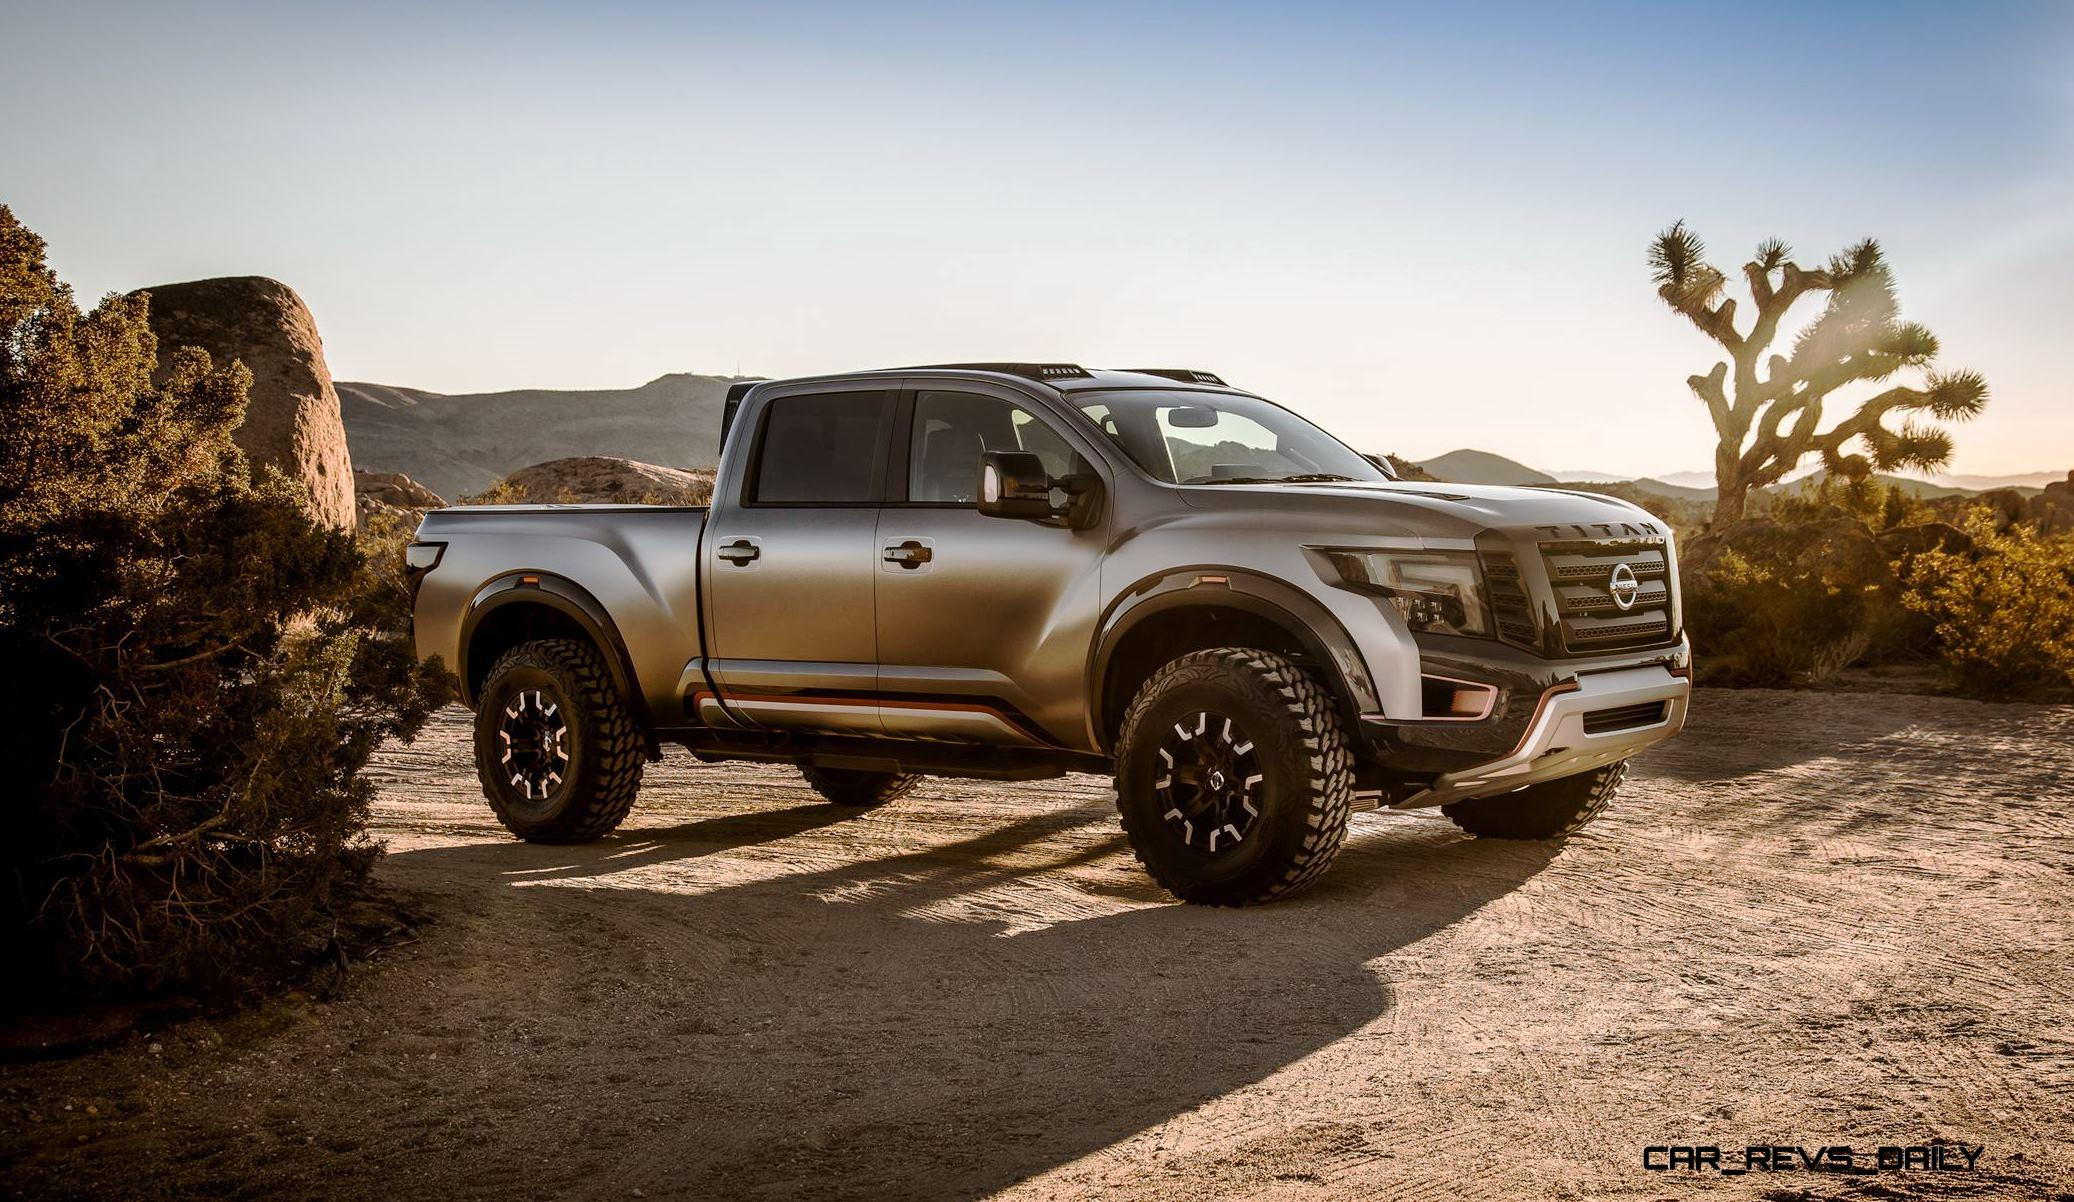 titan nissan warrior concept raptor 2021 side cool truck mods baja date hd release specs cars killer revs daily ford